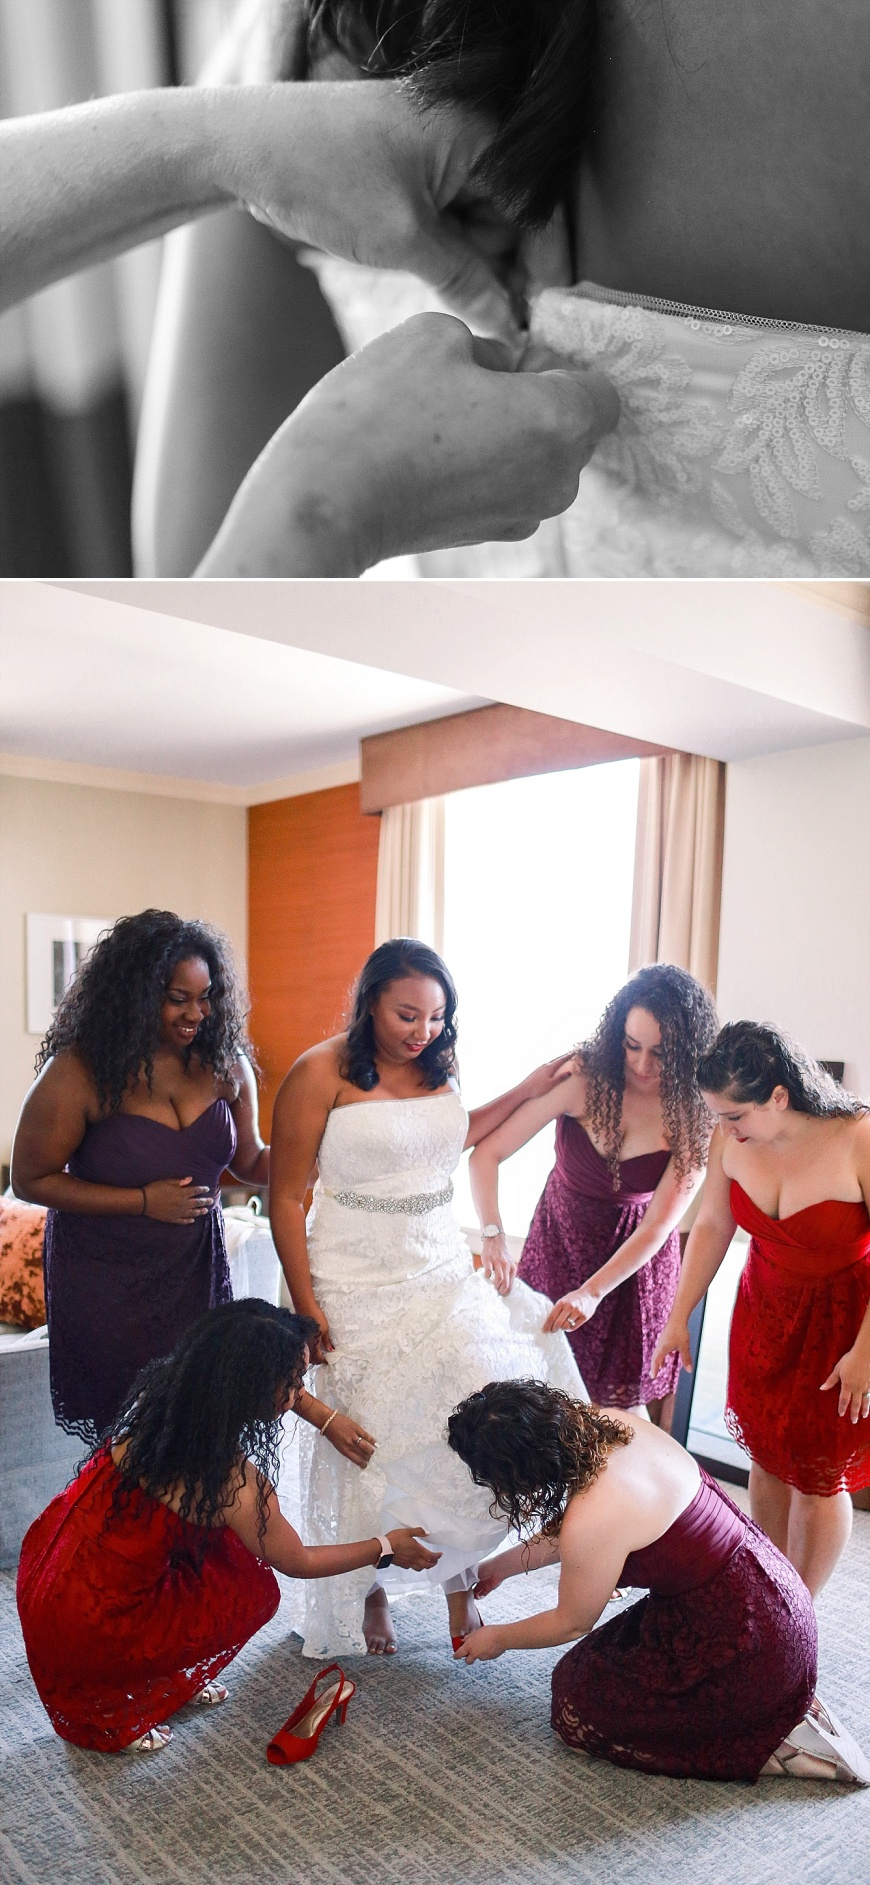 Hotel-Shattuck-Downtown-Berkeley-Wedding-Photographer_1010.jpg